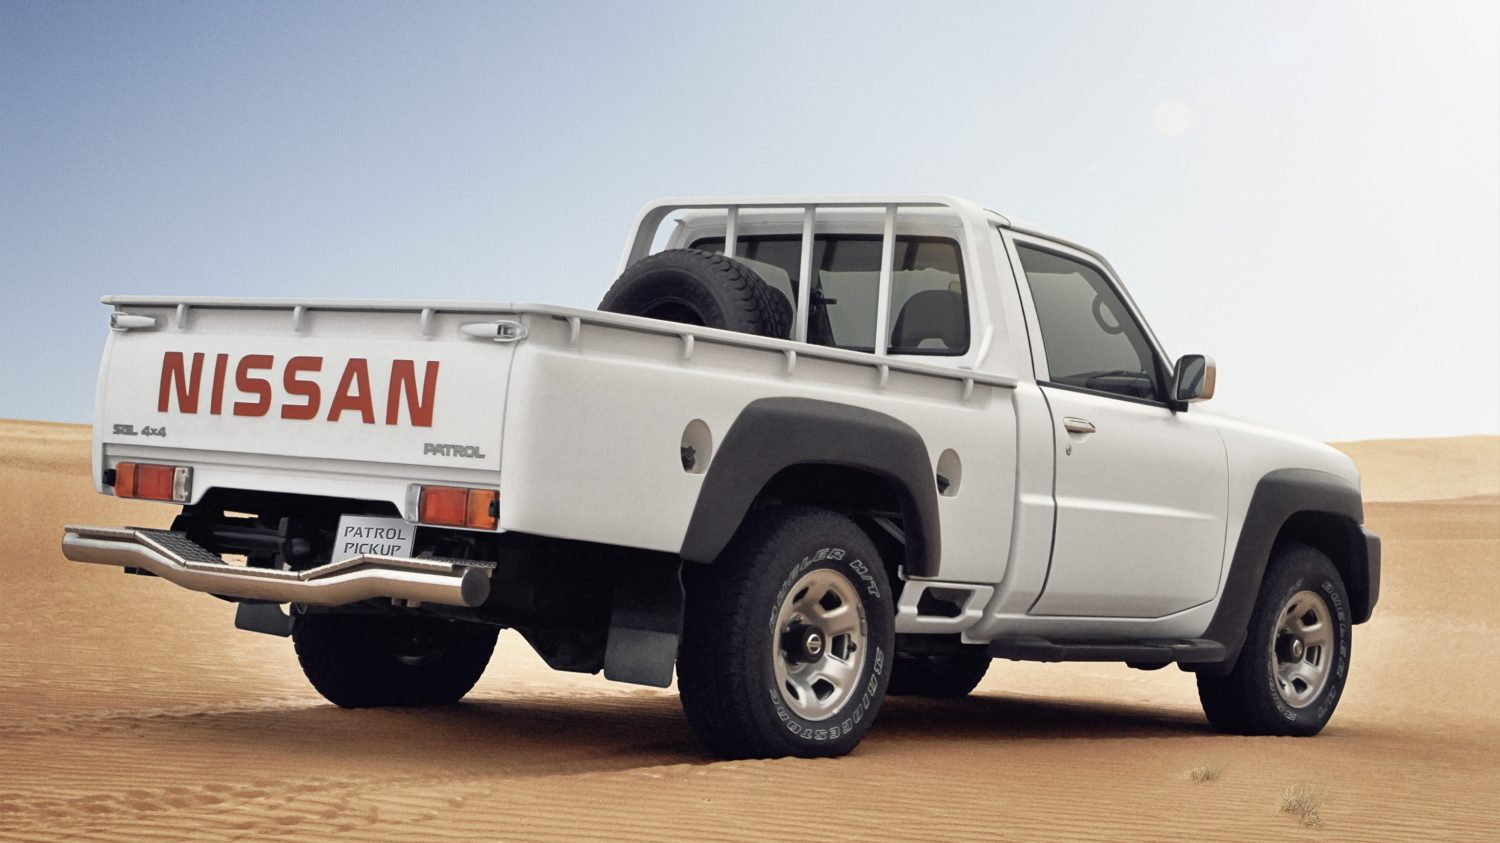 nissan patrol pick up off road 4x4 commercial truck nissan kuwait. Black Bedroom Furniture Sets. Home Design Ideas